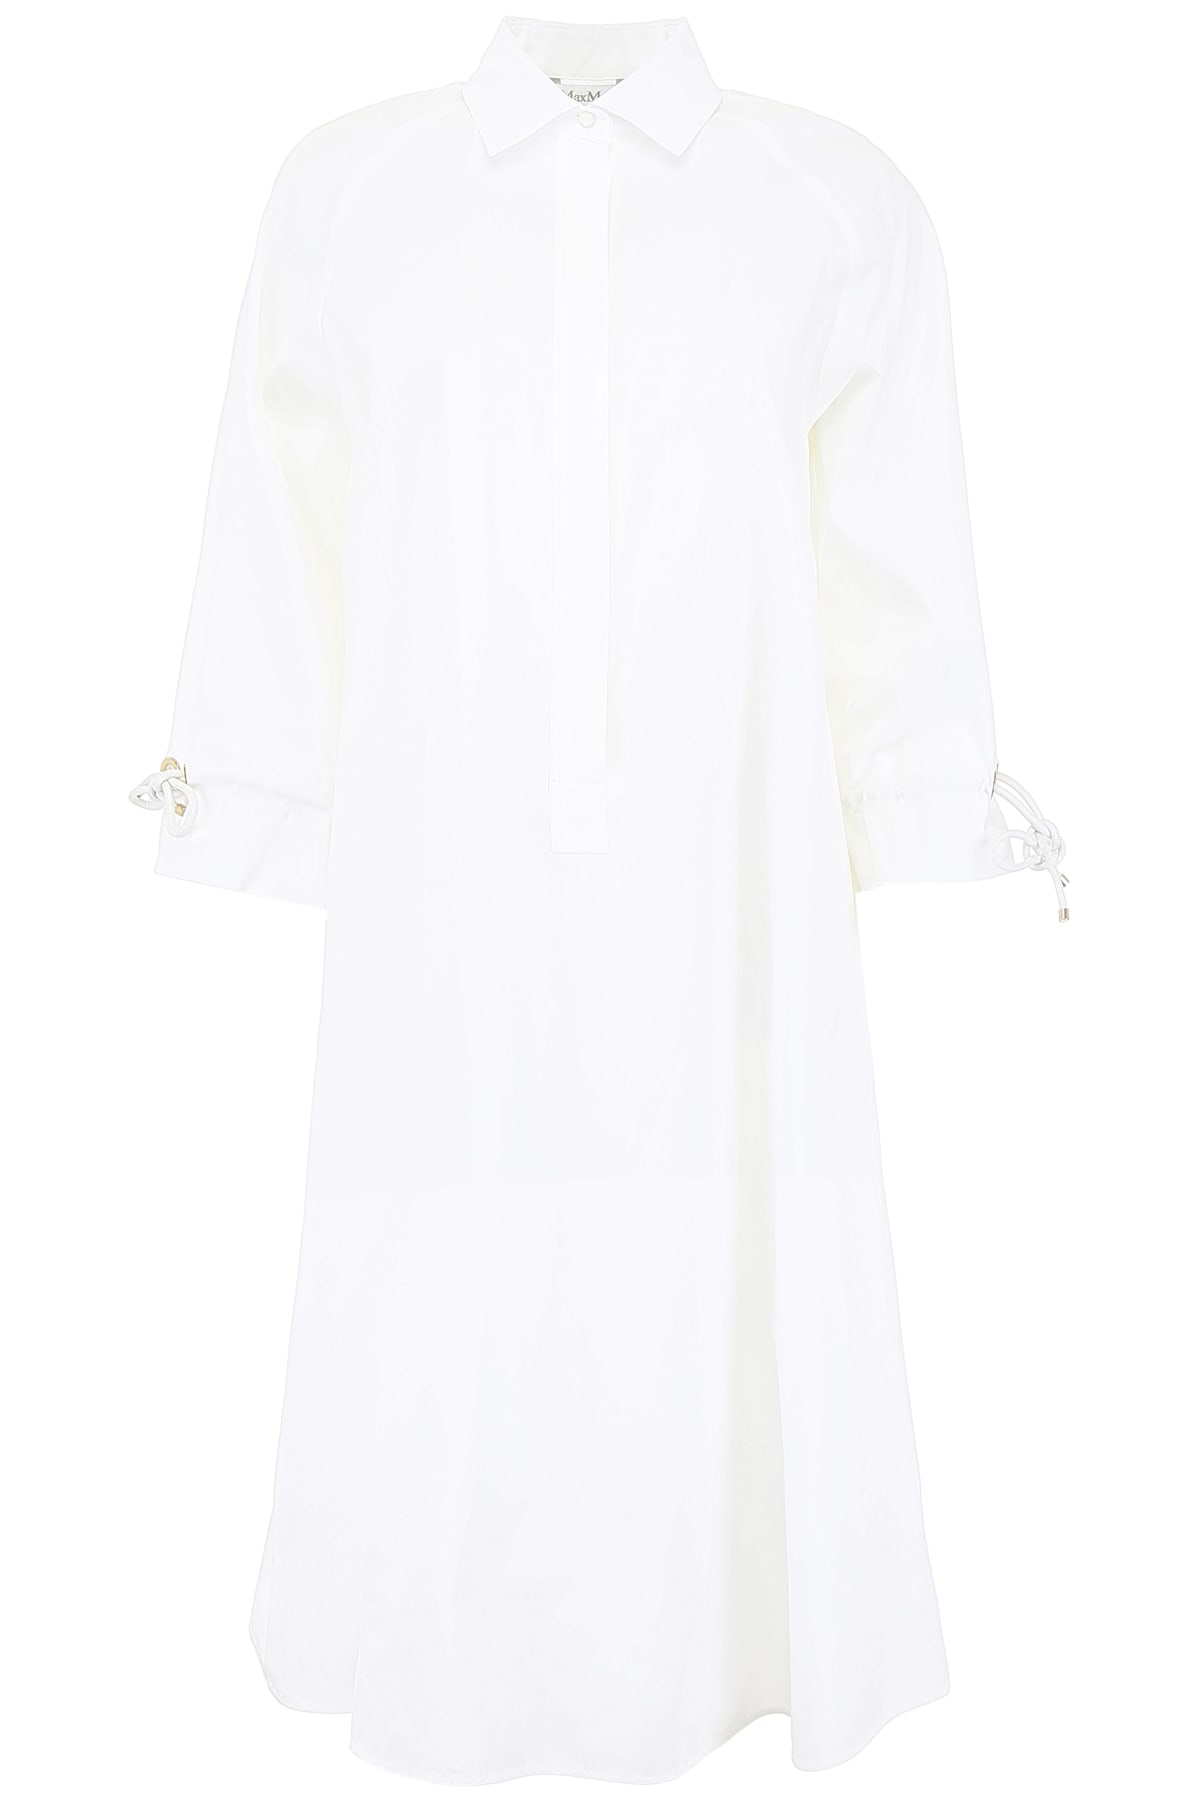 Max Mara Cotton Shirt Dress